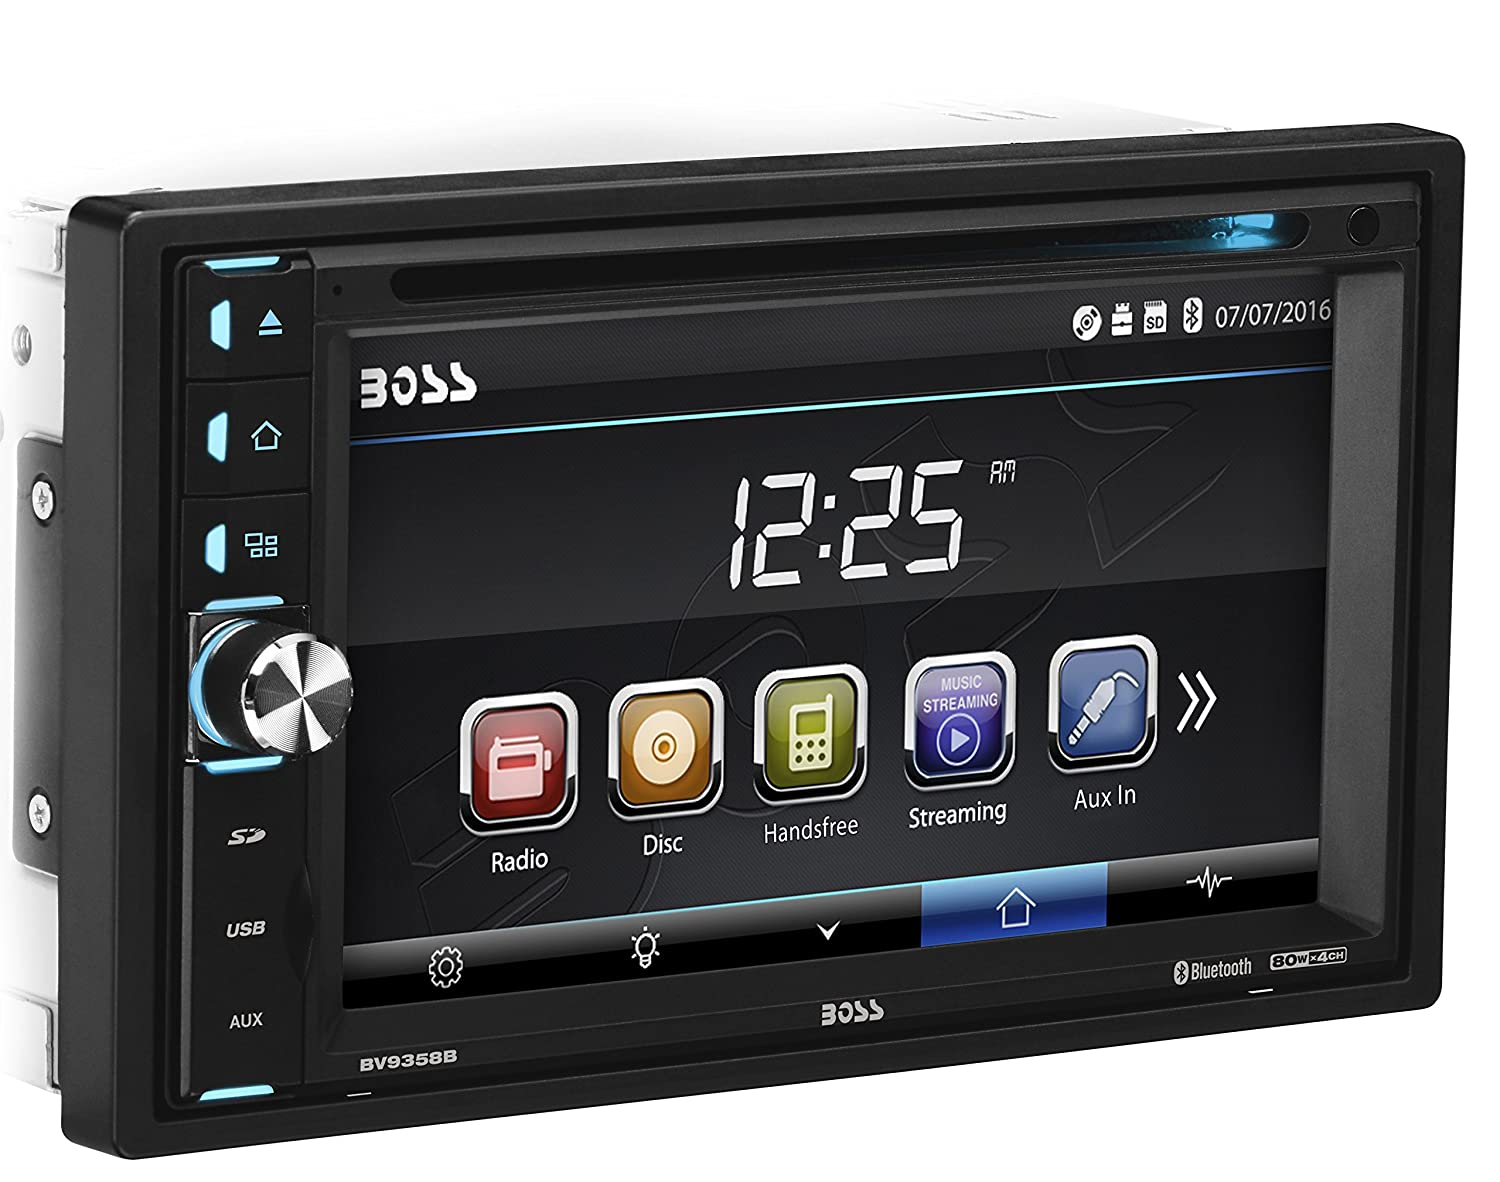 811hWqh8V8L._SL1500_ amazon com boss audio bv9358b double din, touchscreen, bluetooth on how to connect wiring harness to boss bv9358b